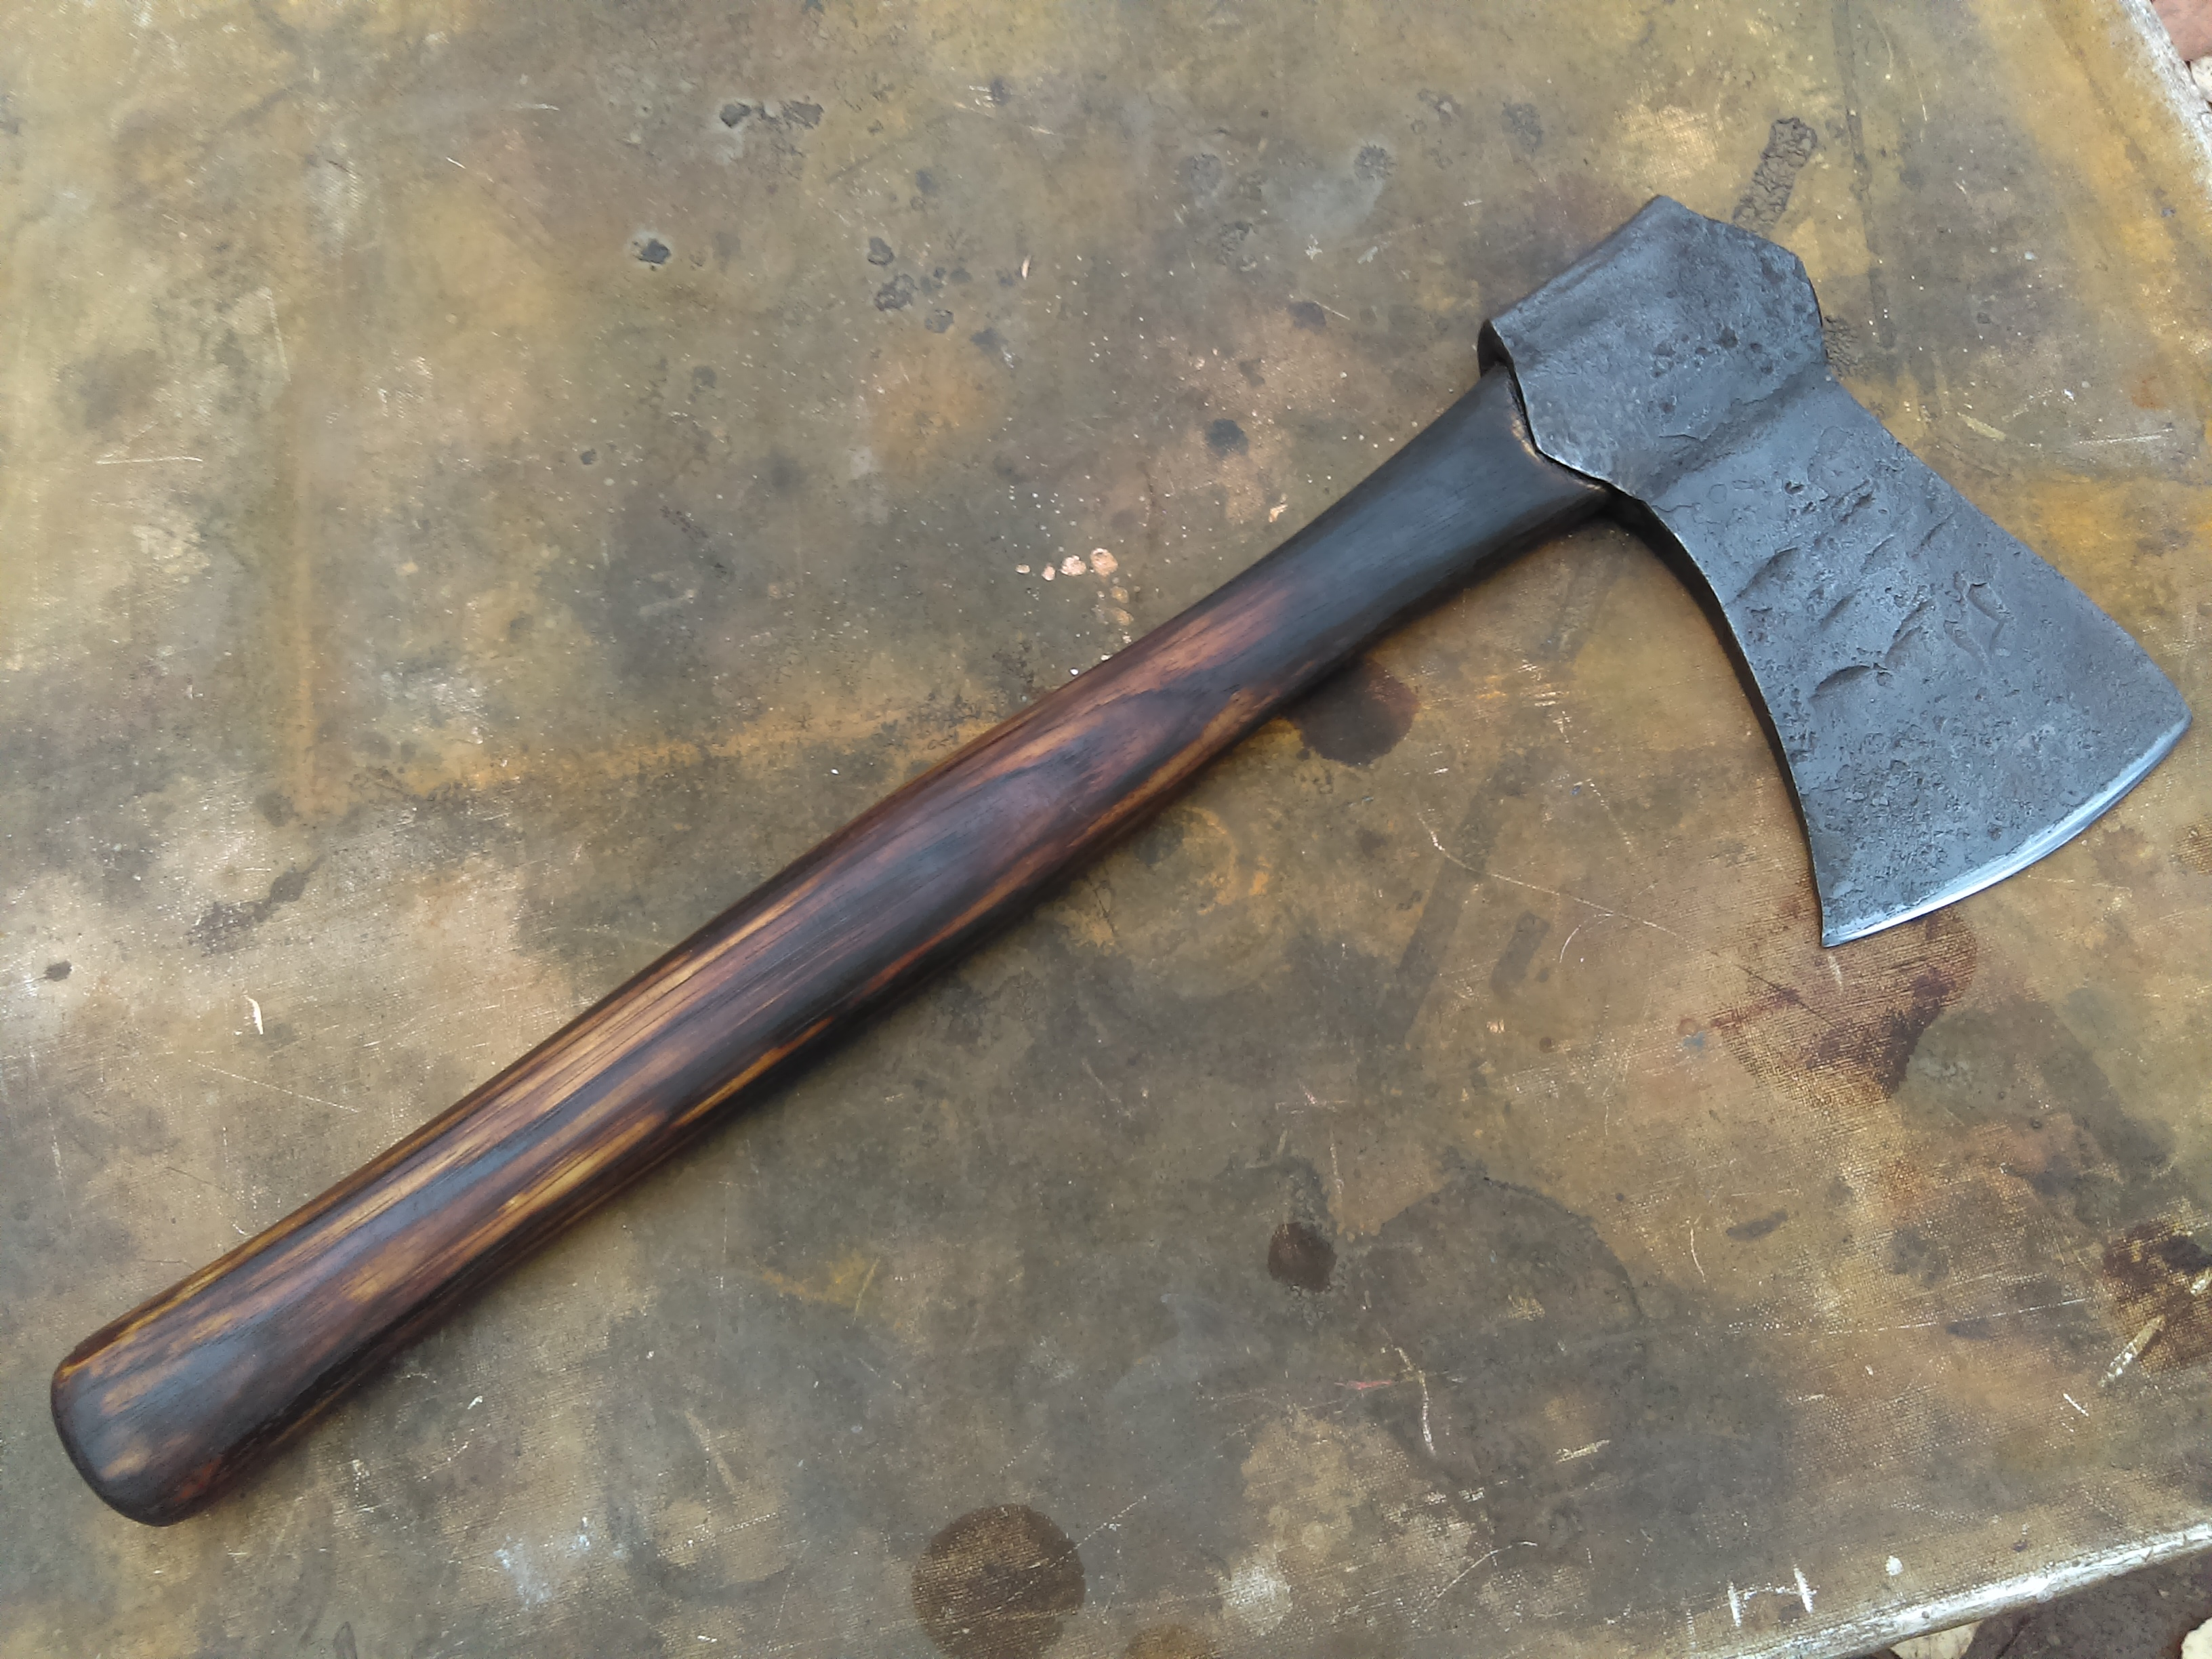 2lb axe with 18' handle